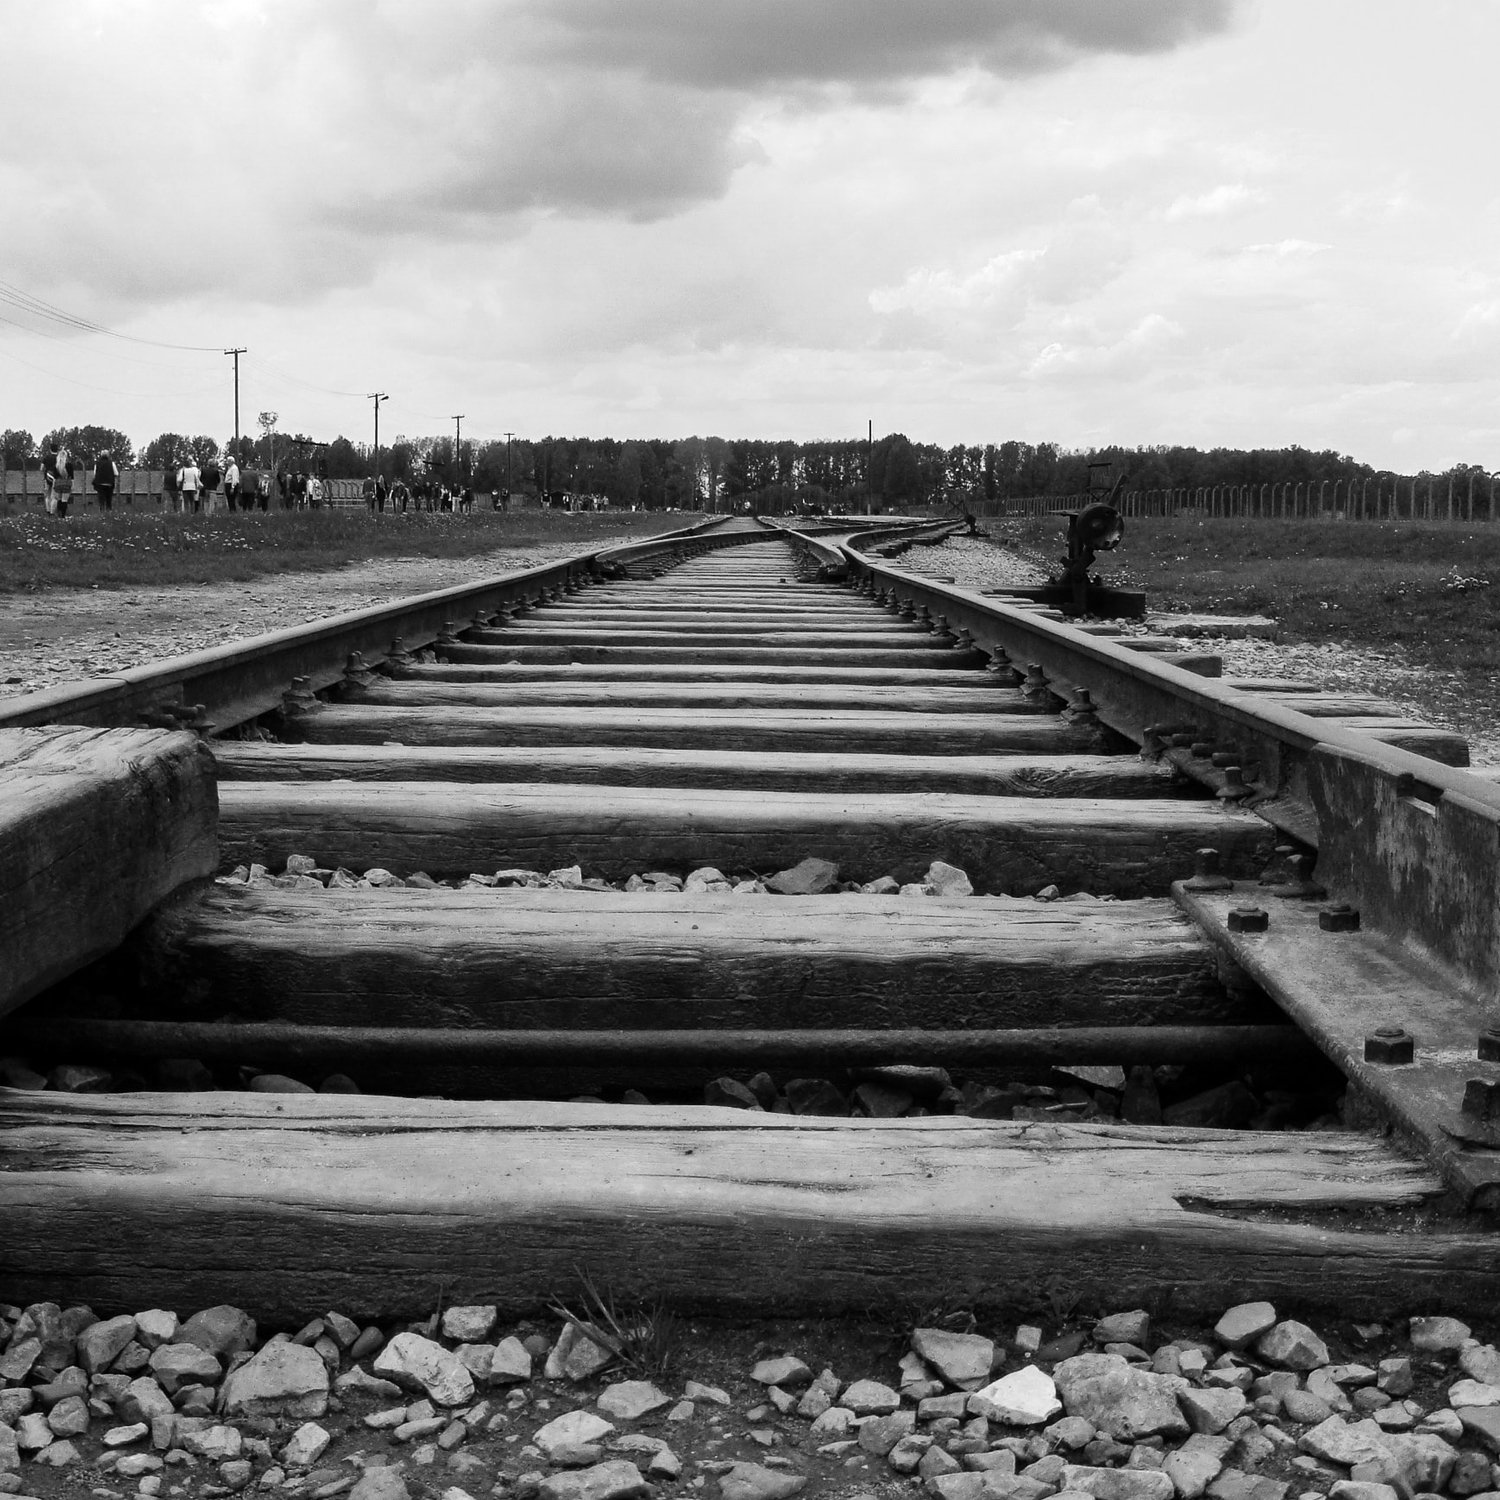 Train tracks, Photo by Mateus Campos Felipe on Unsplash